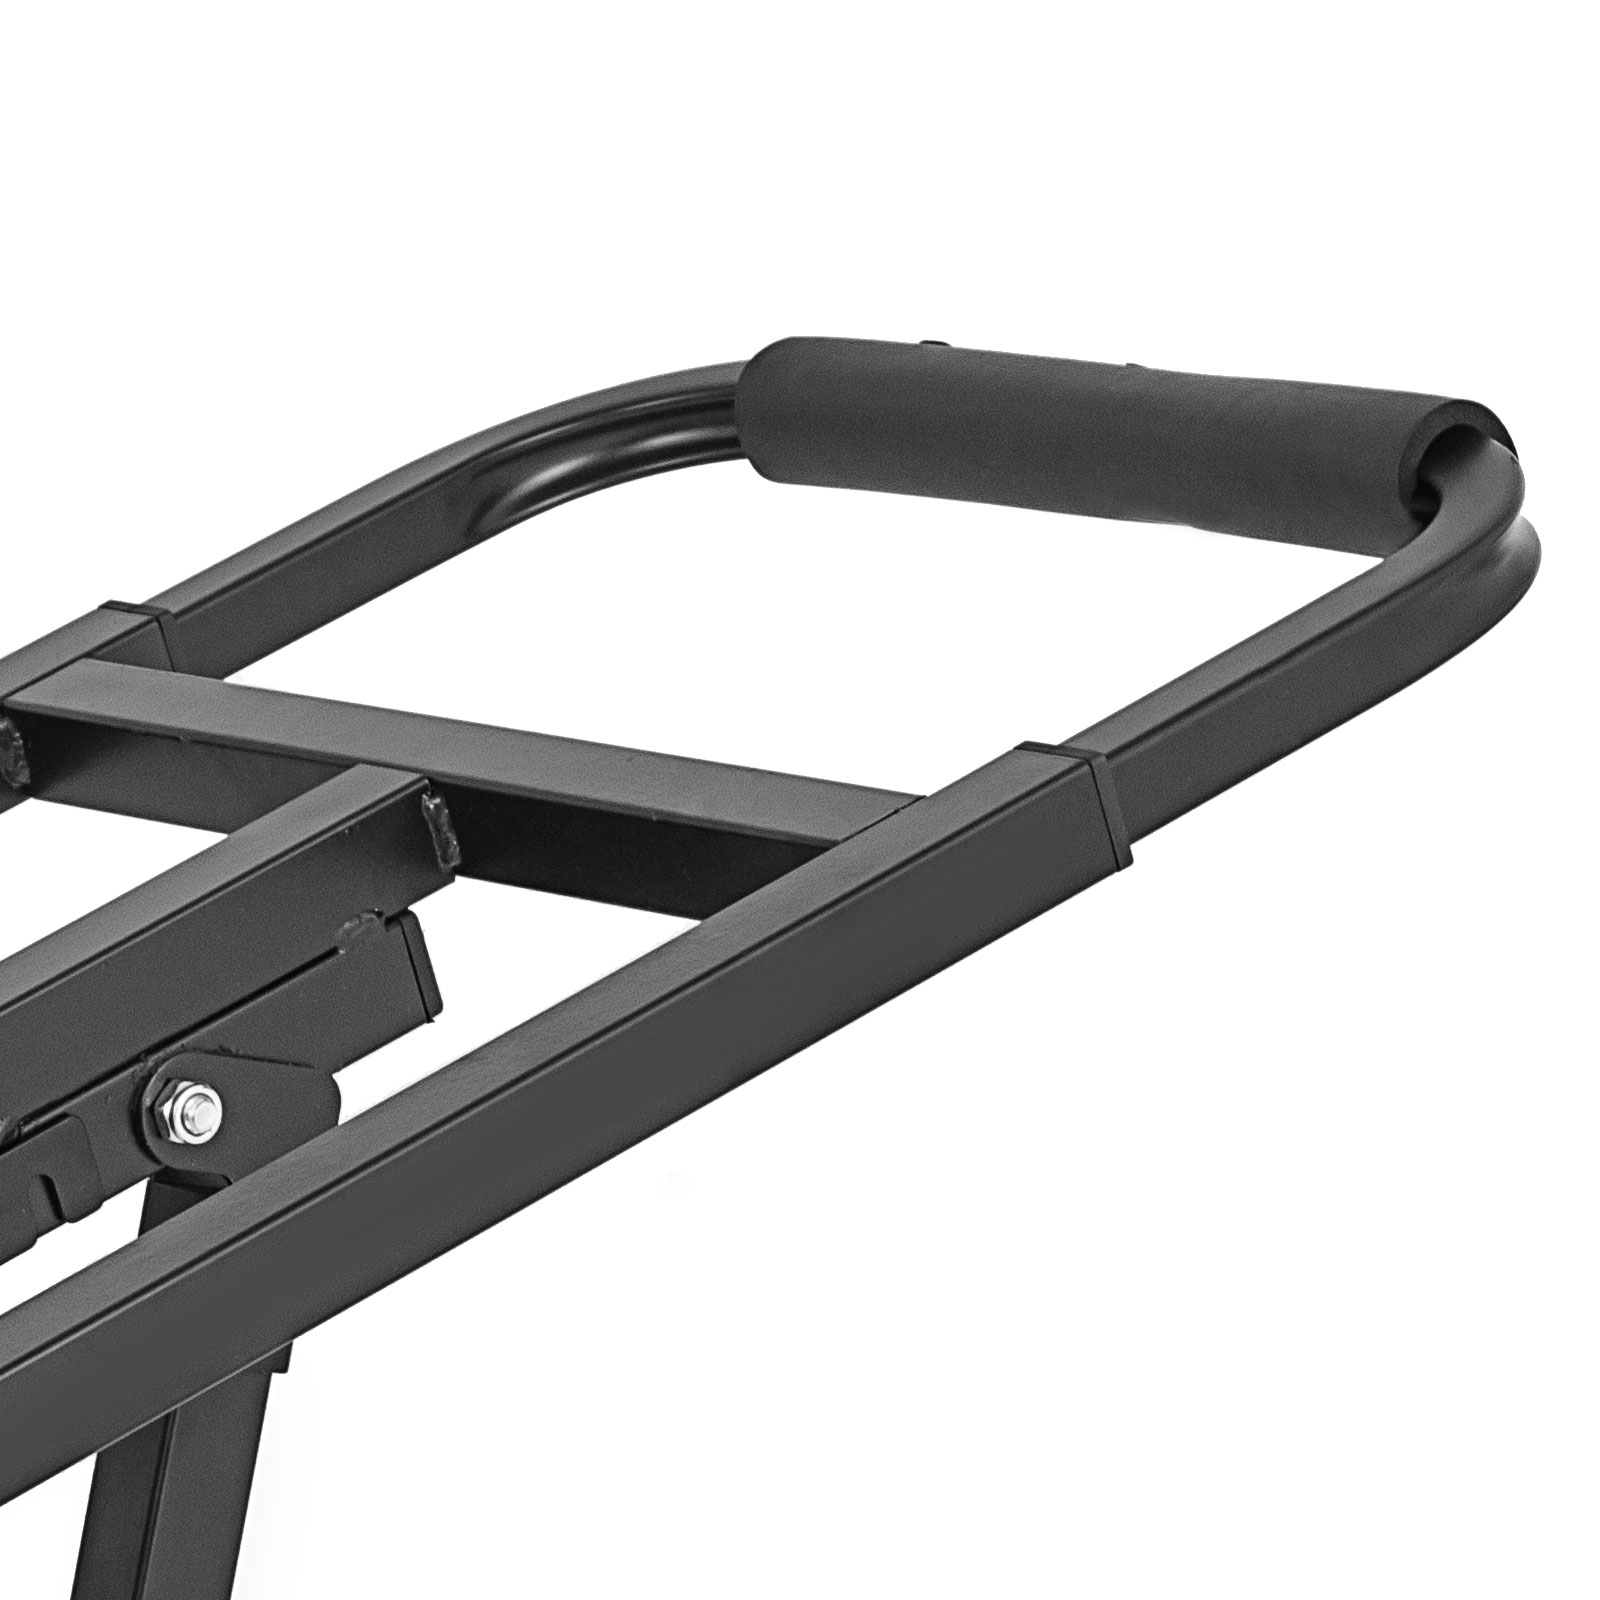 Details about Stair Climbing Trolley Stair Climber Cart Hand Truck Dolly  Climber